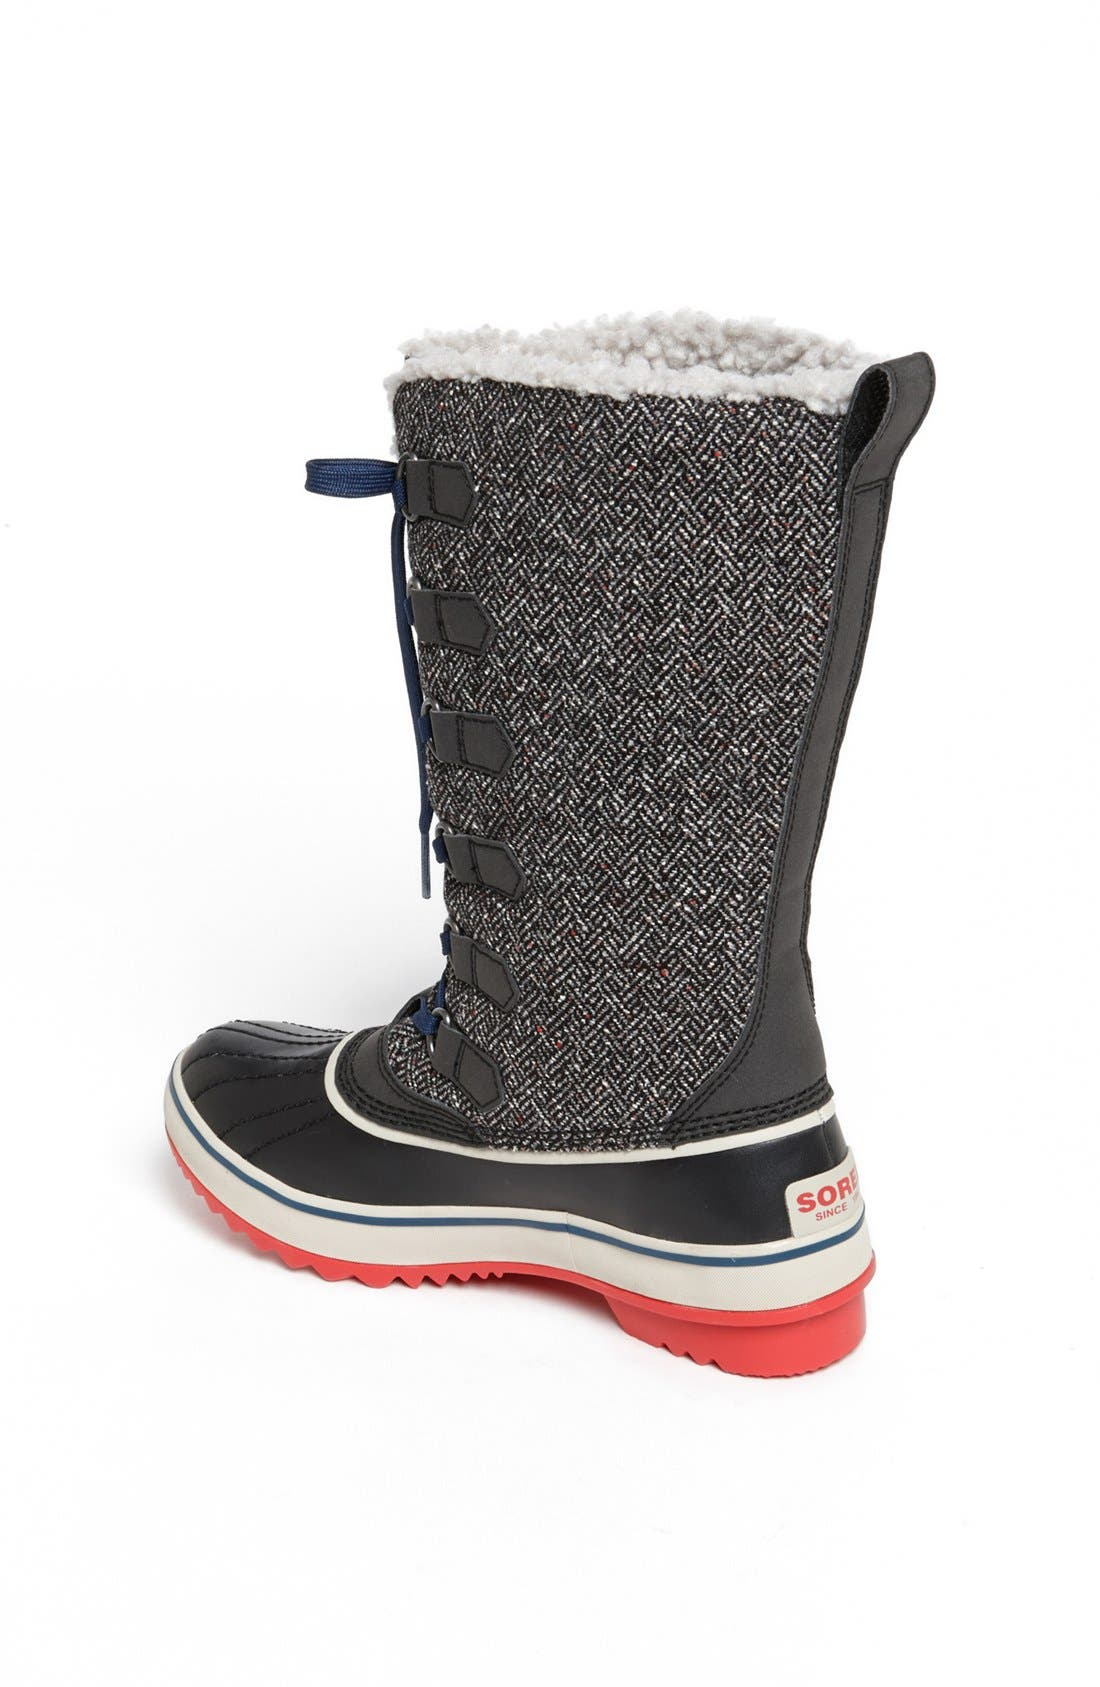 Alternate Image 2  - SOREL 'Tivoli High' Waterproof Boot